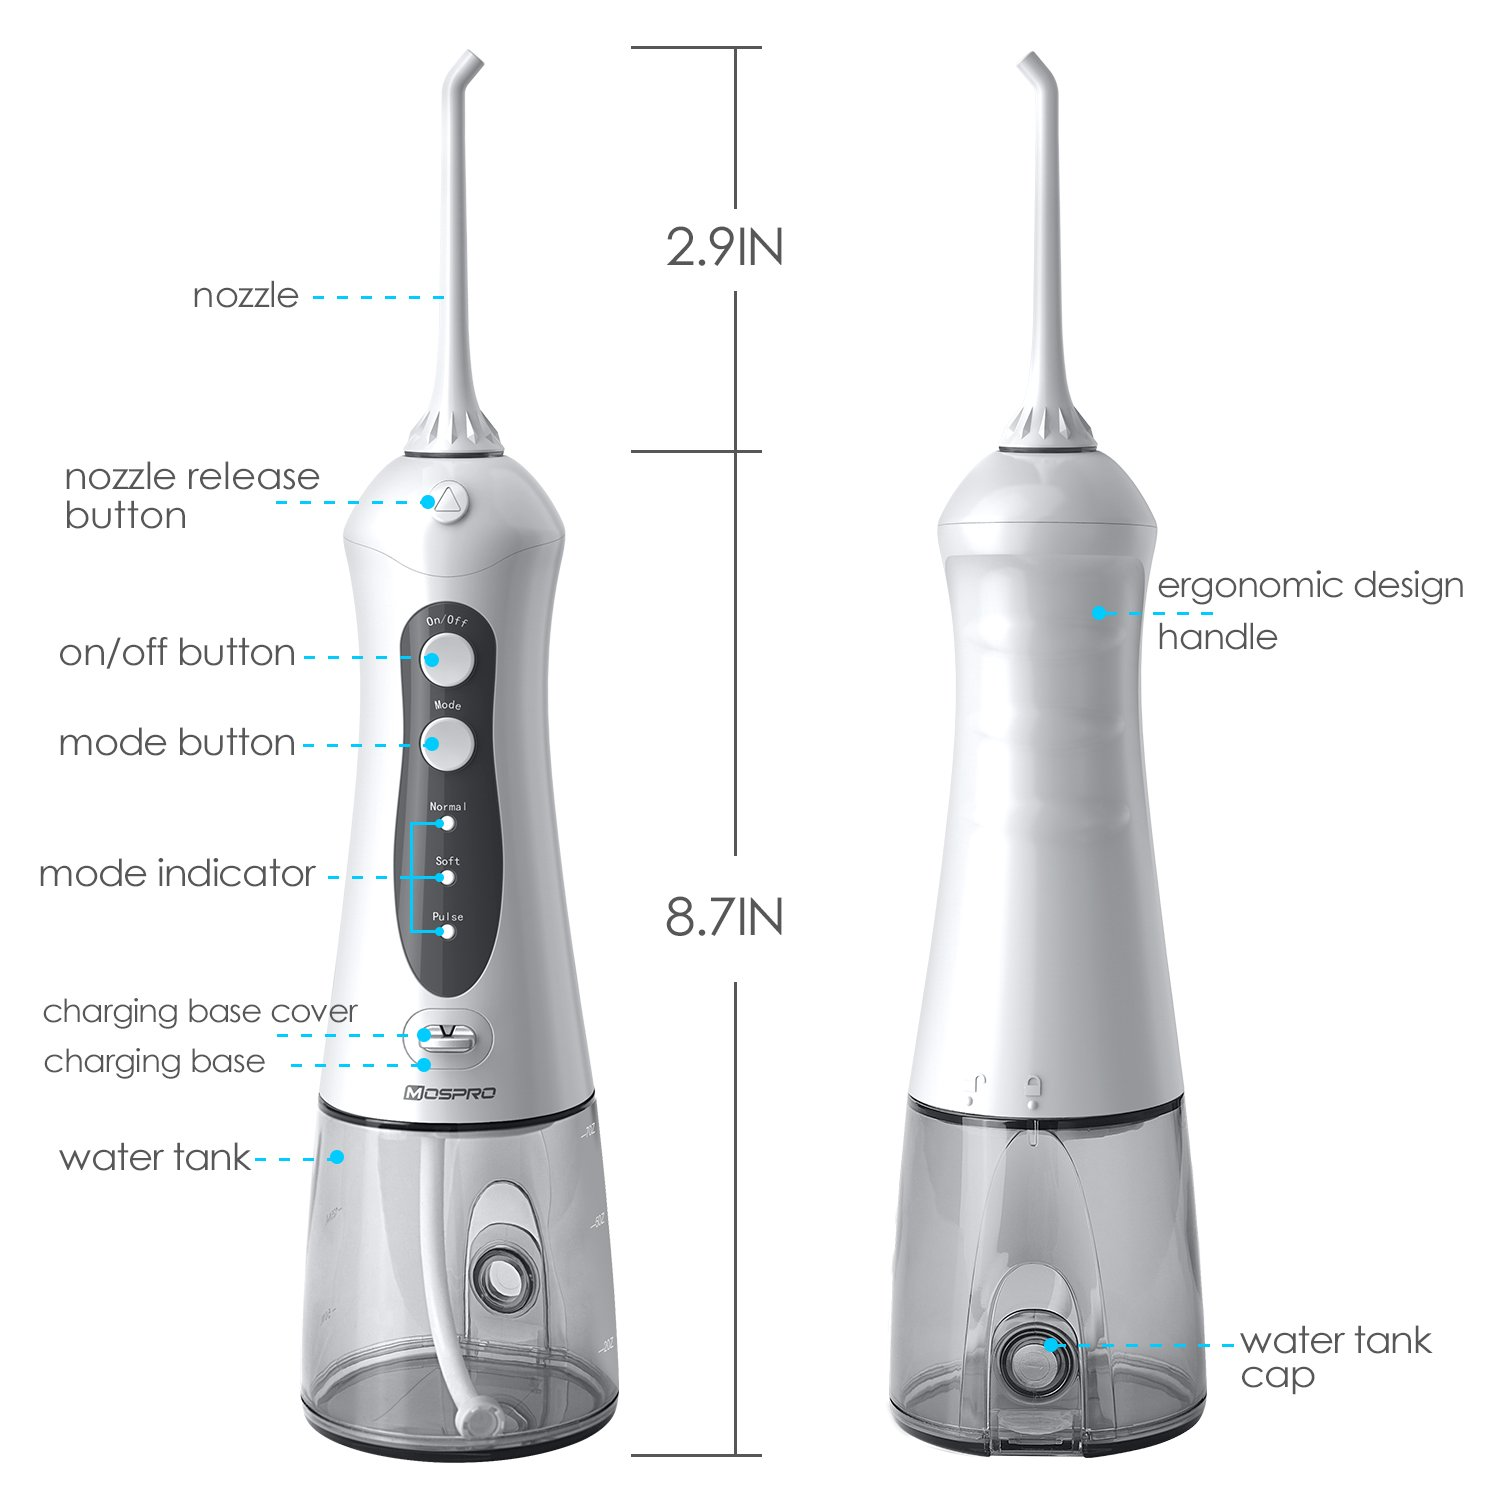 Water Flosser Professional Cordless Dental Oral Irrigator - Portable and Rechargeable IPX7 Waterproof 3 Modes Water Flossing with Cleanable Water Tank for Home and Travel, Braces & Bridges Care by MOSPRO (Image #7)